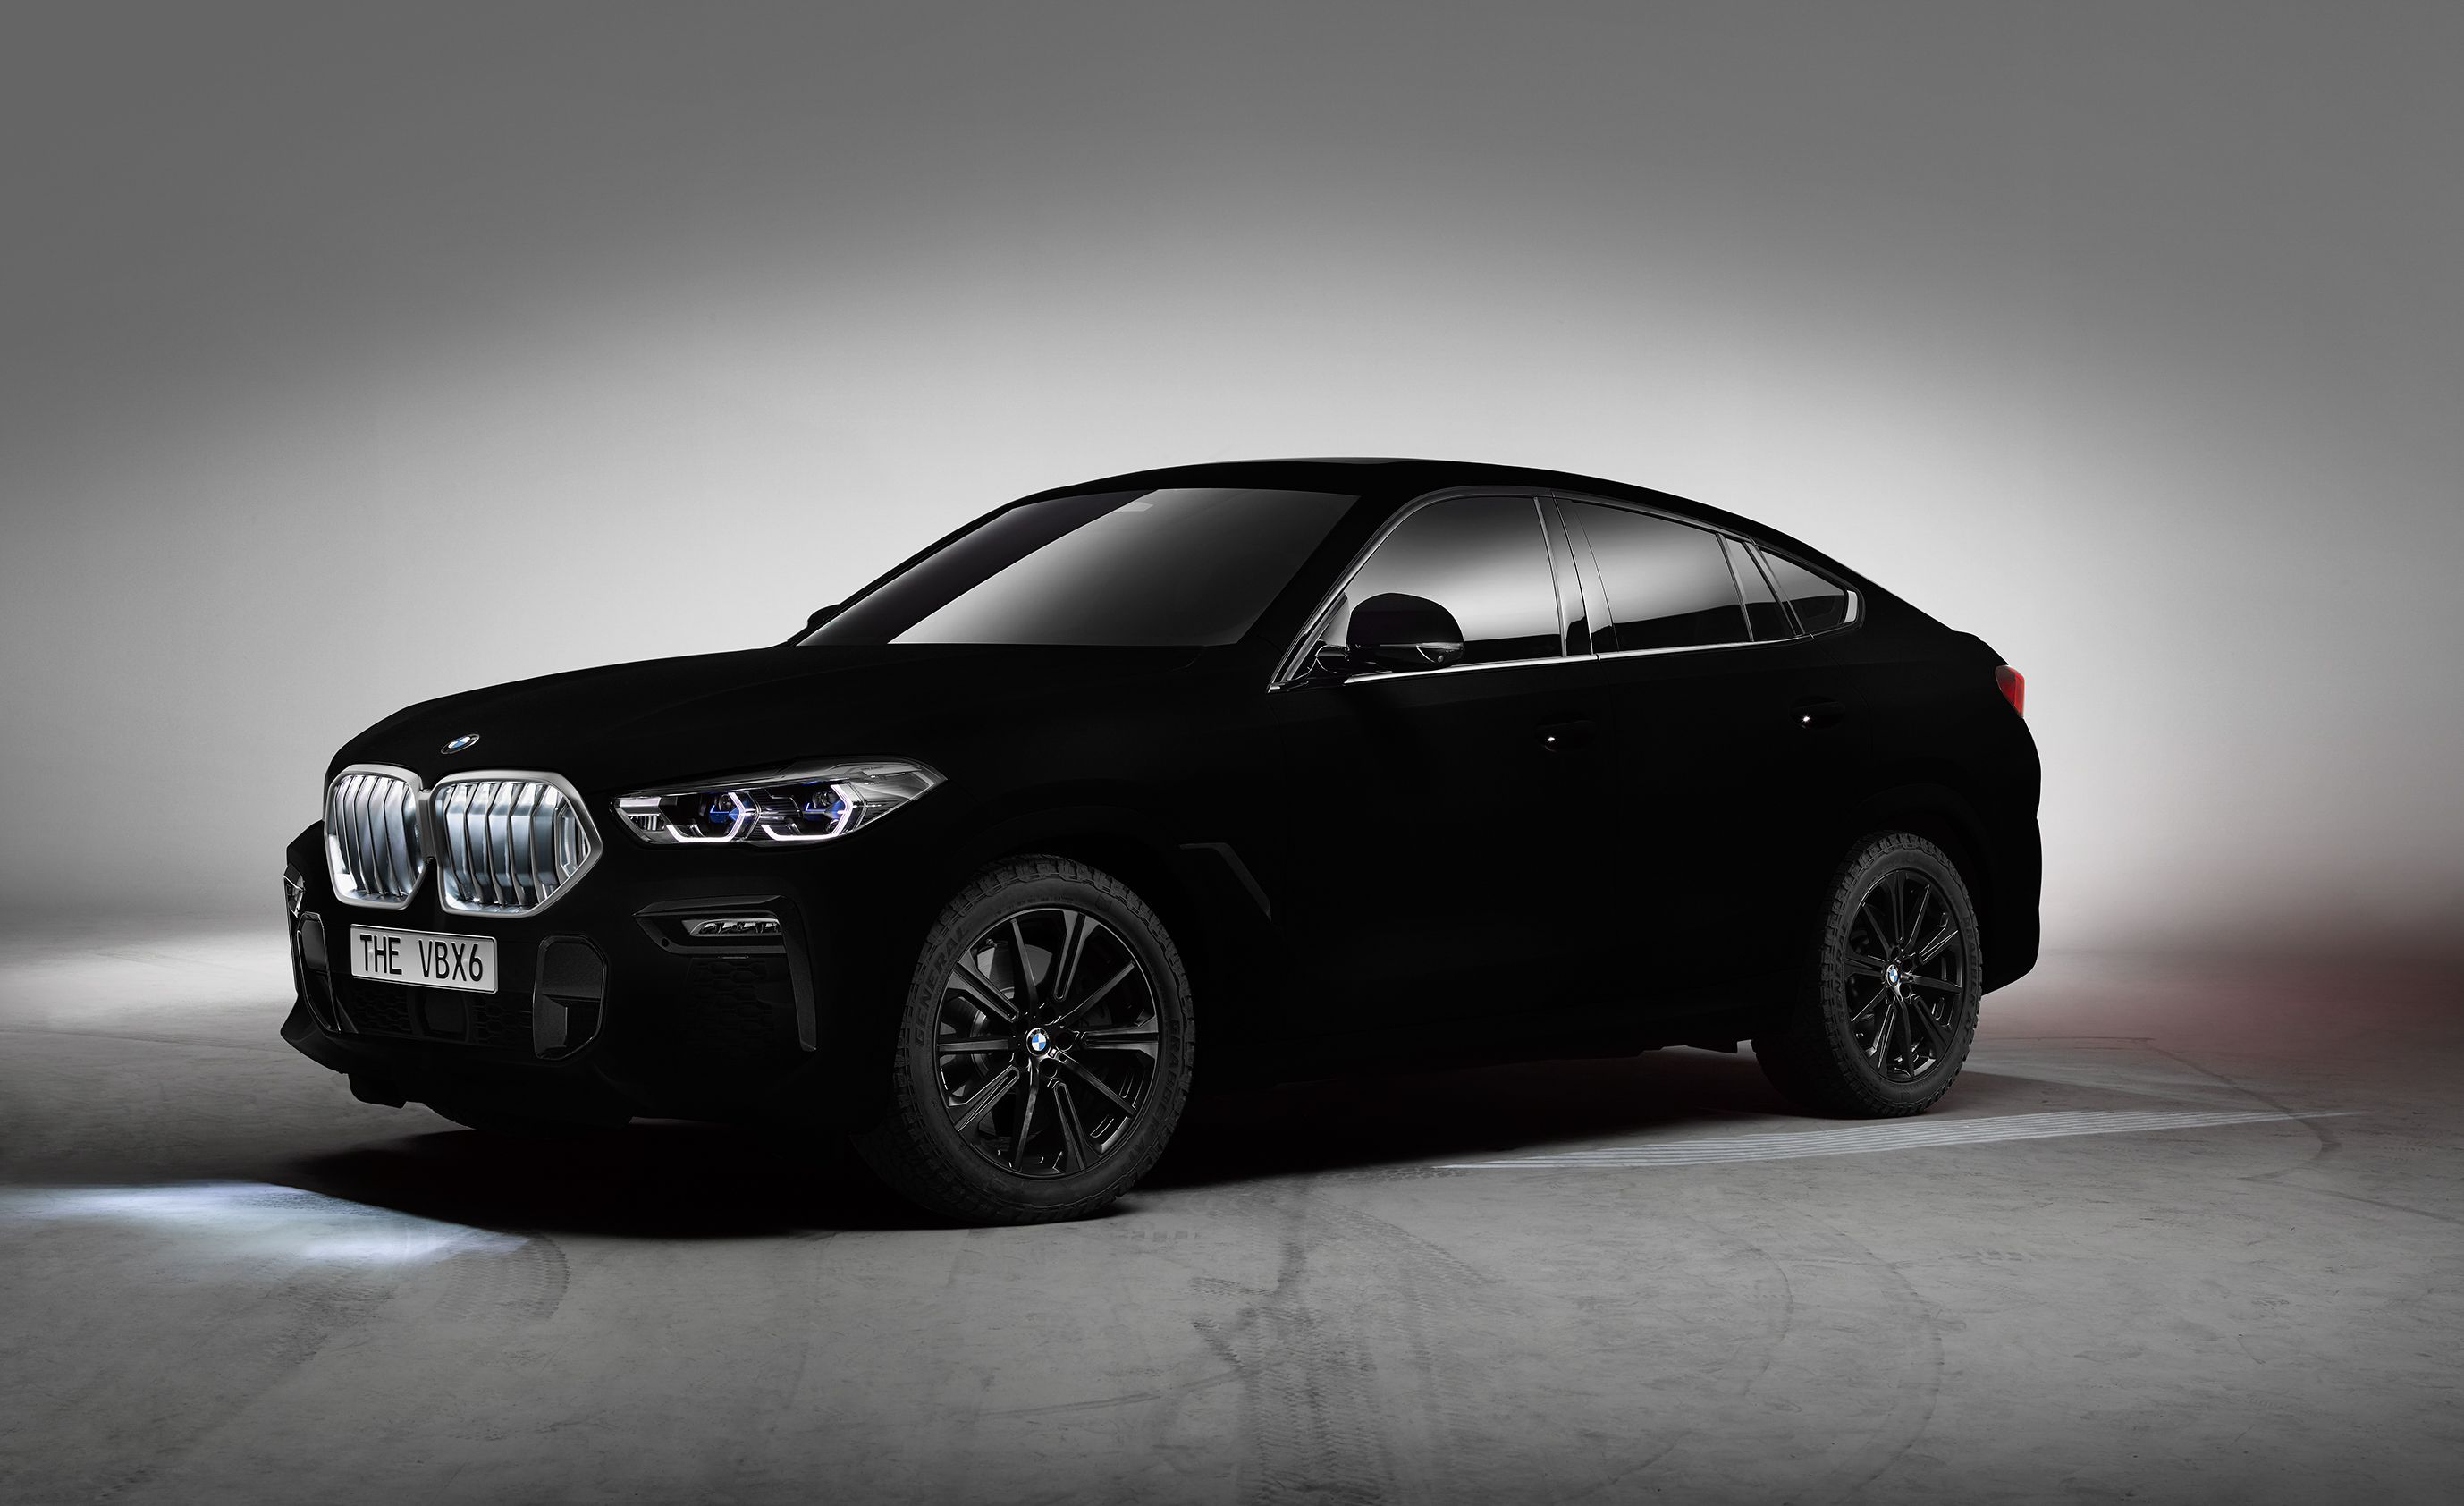 Bmw X6 Gets A Blackest Of Black Treatment With Paint That Eats Light